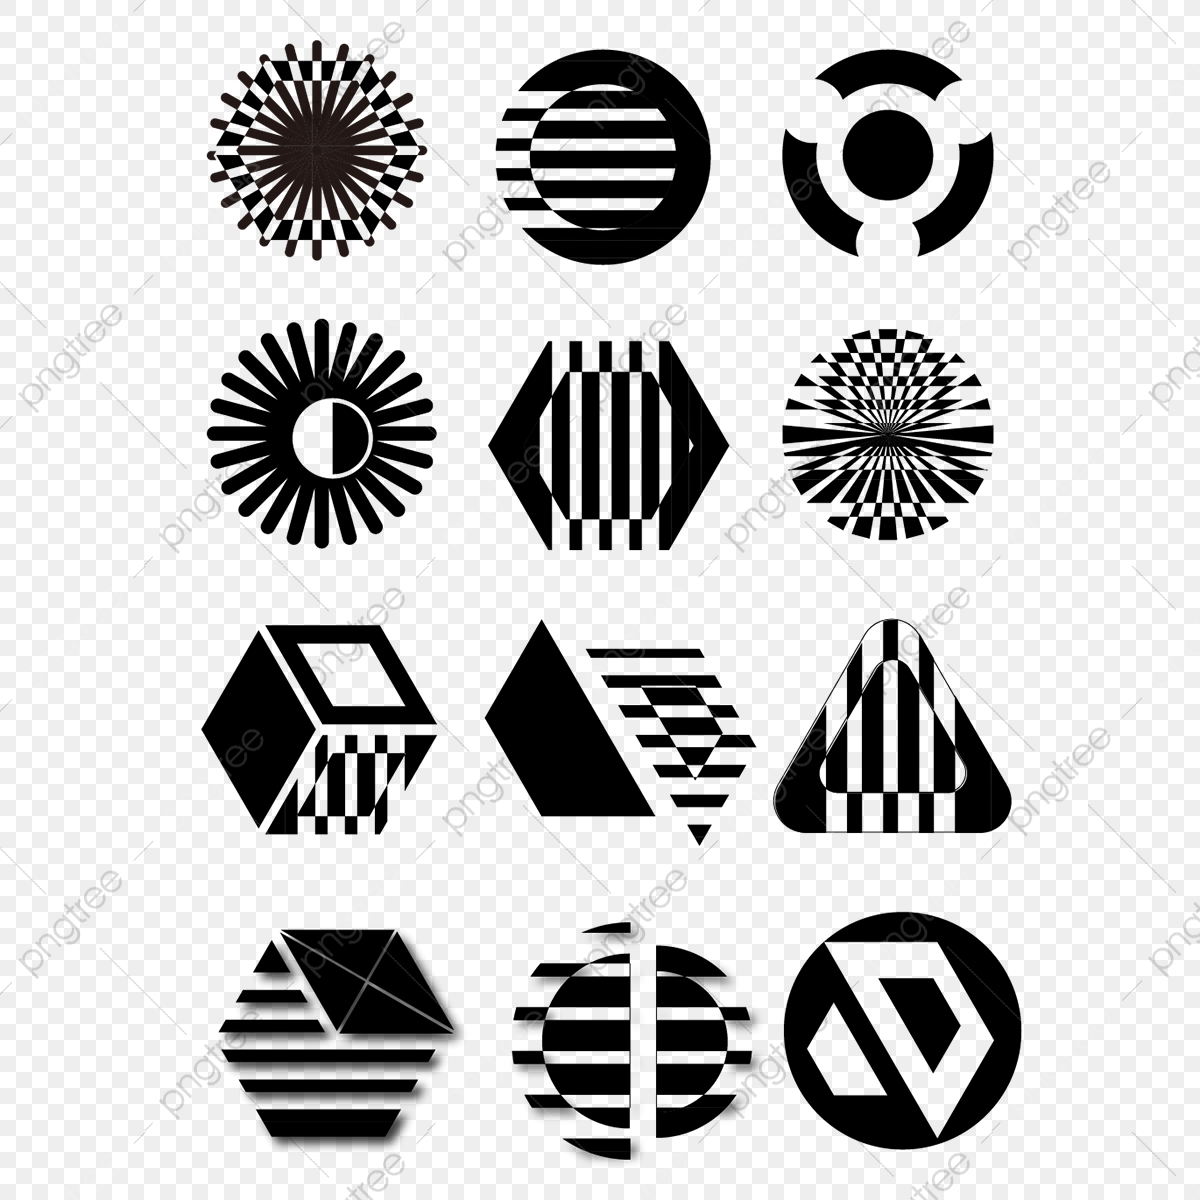 Black And White Circular Icon Elements, Round Icons, Black.